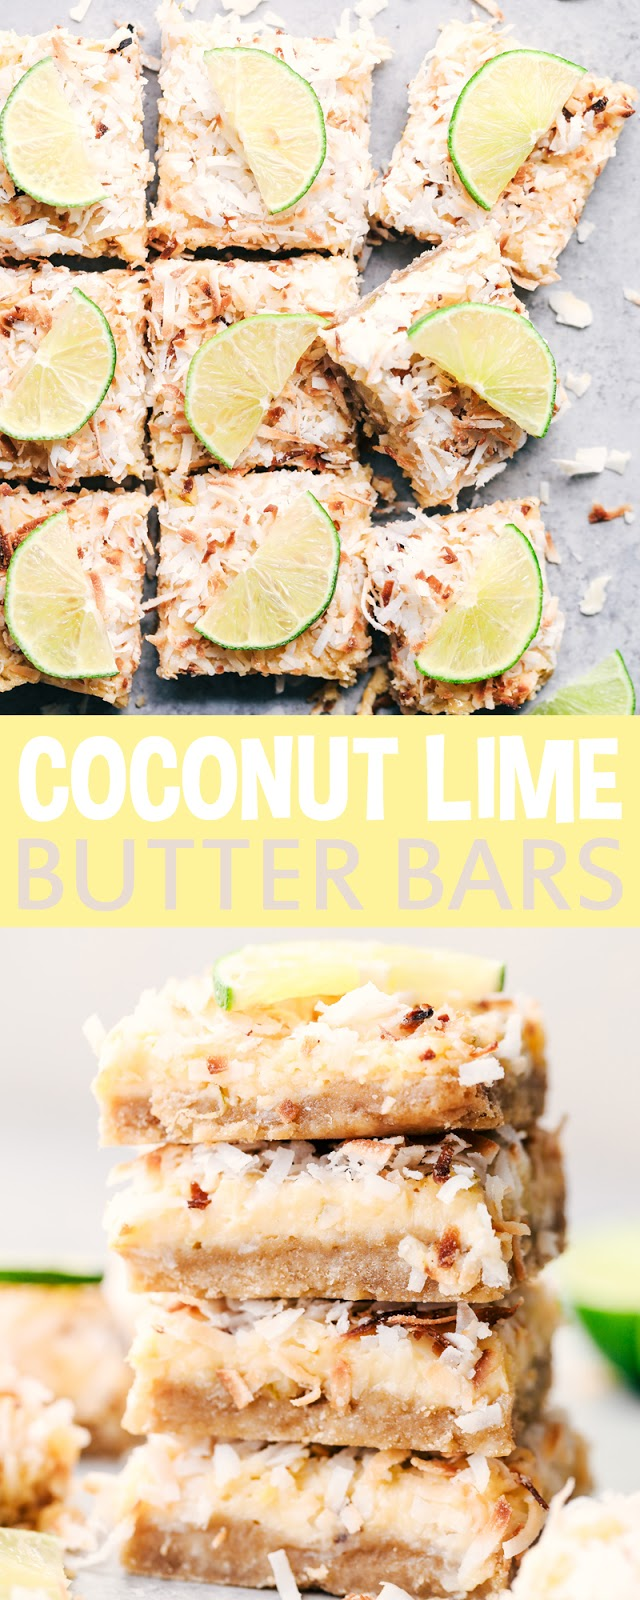 COCONUT LIME BUTTER BARS